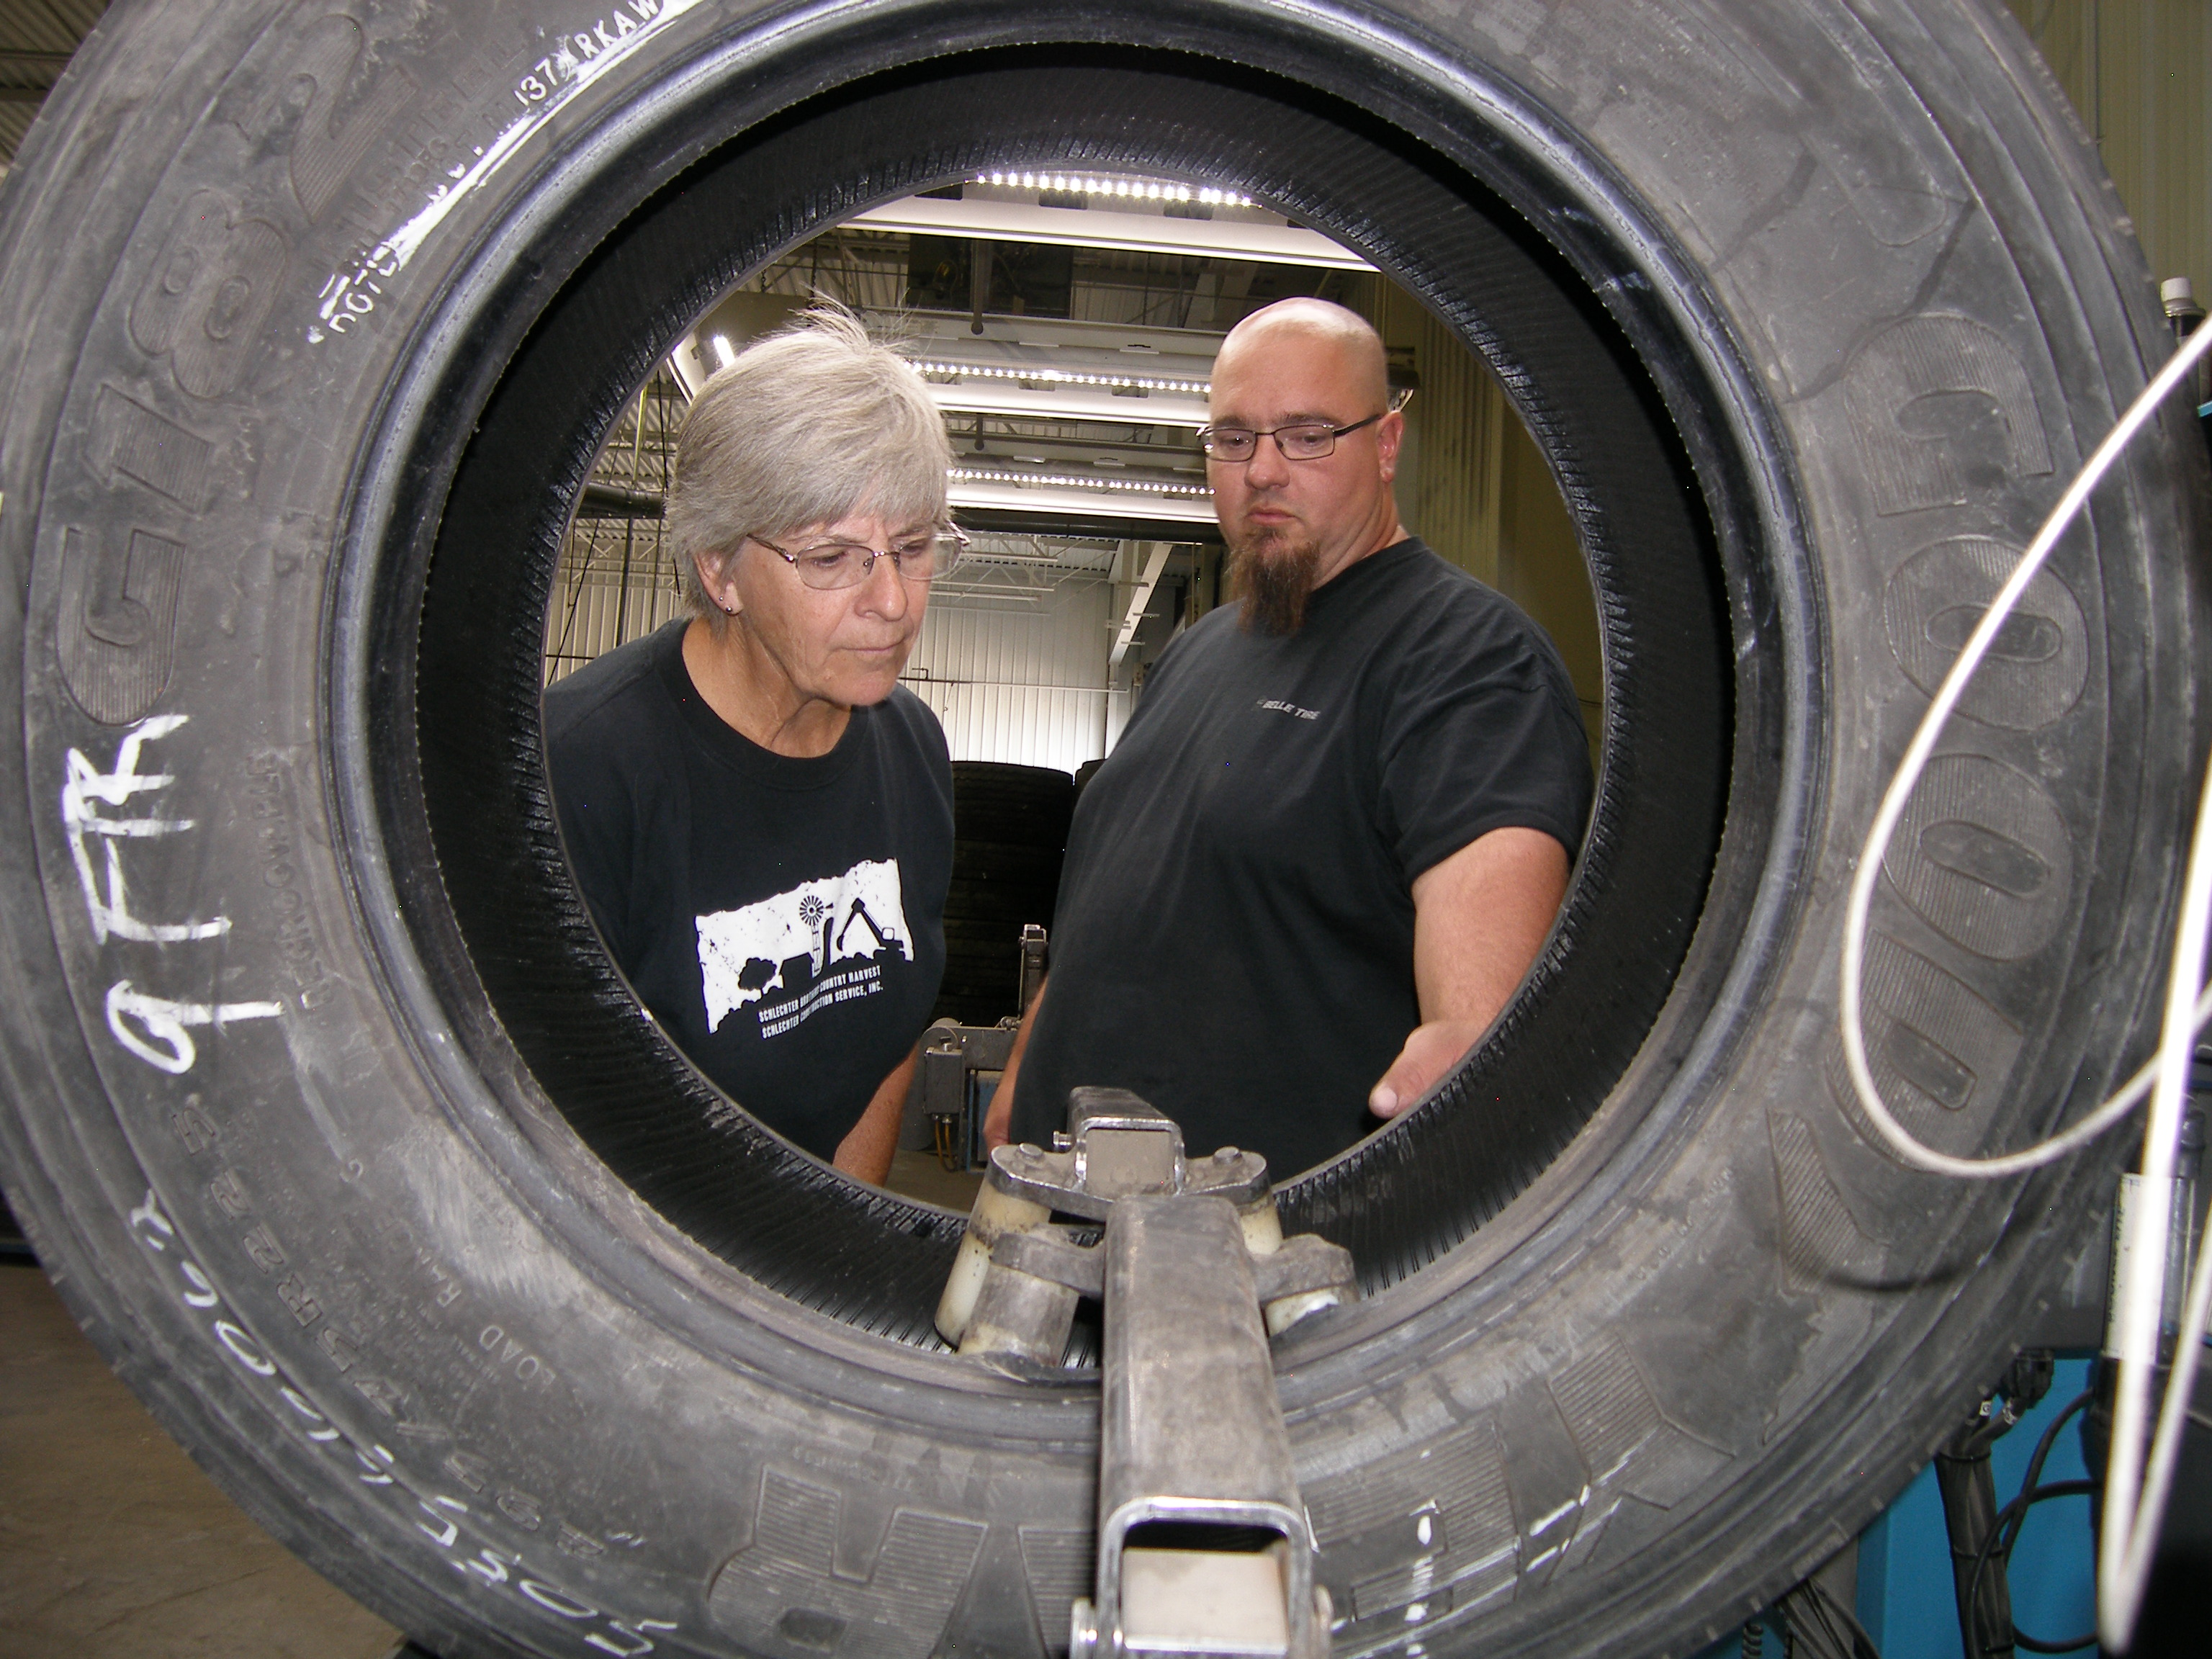 Belle Tire shows retreading value at open house